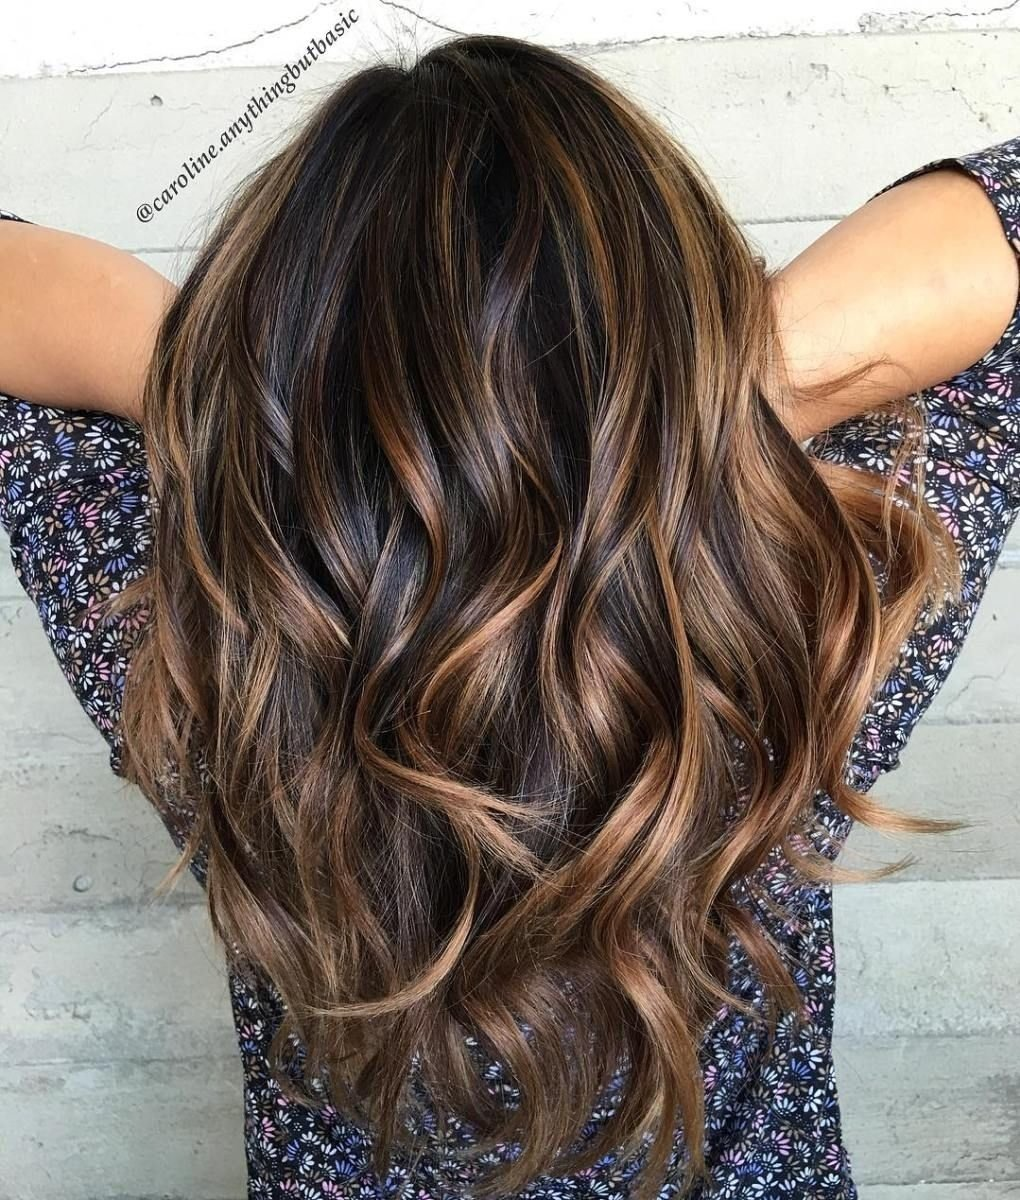 10 Fabulous Chocolate Brown Hair Color Ideas 60 chocolate brown hair color ideas for brunettes tresses 2020